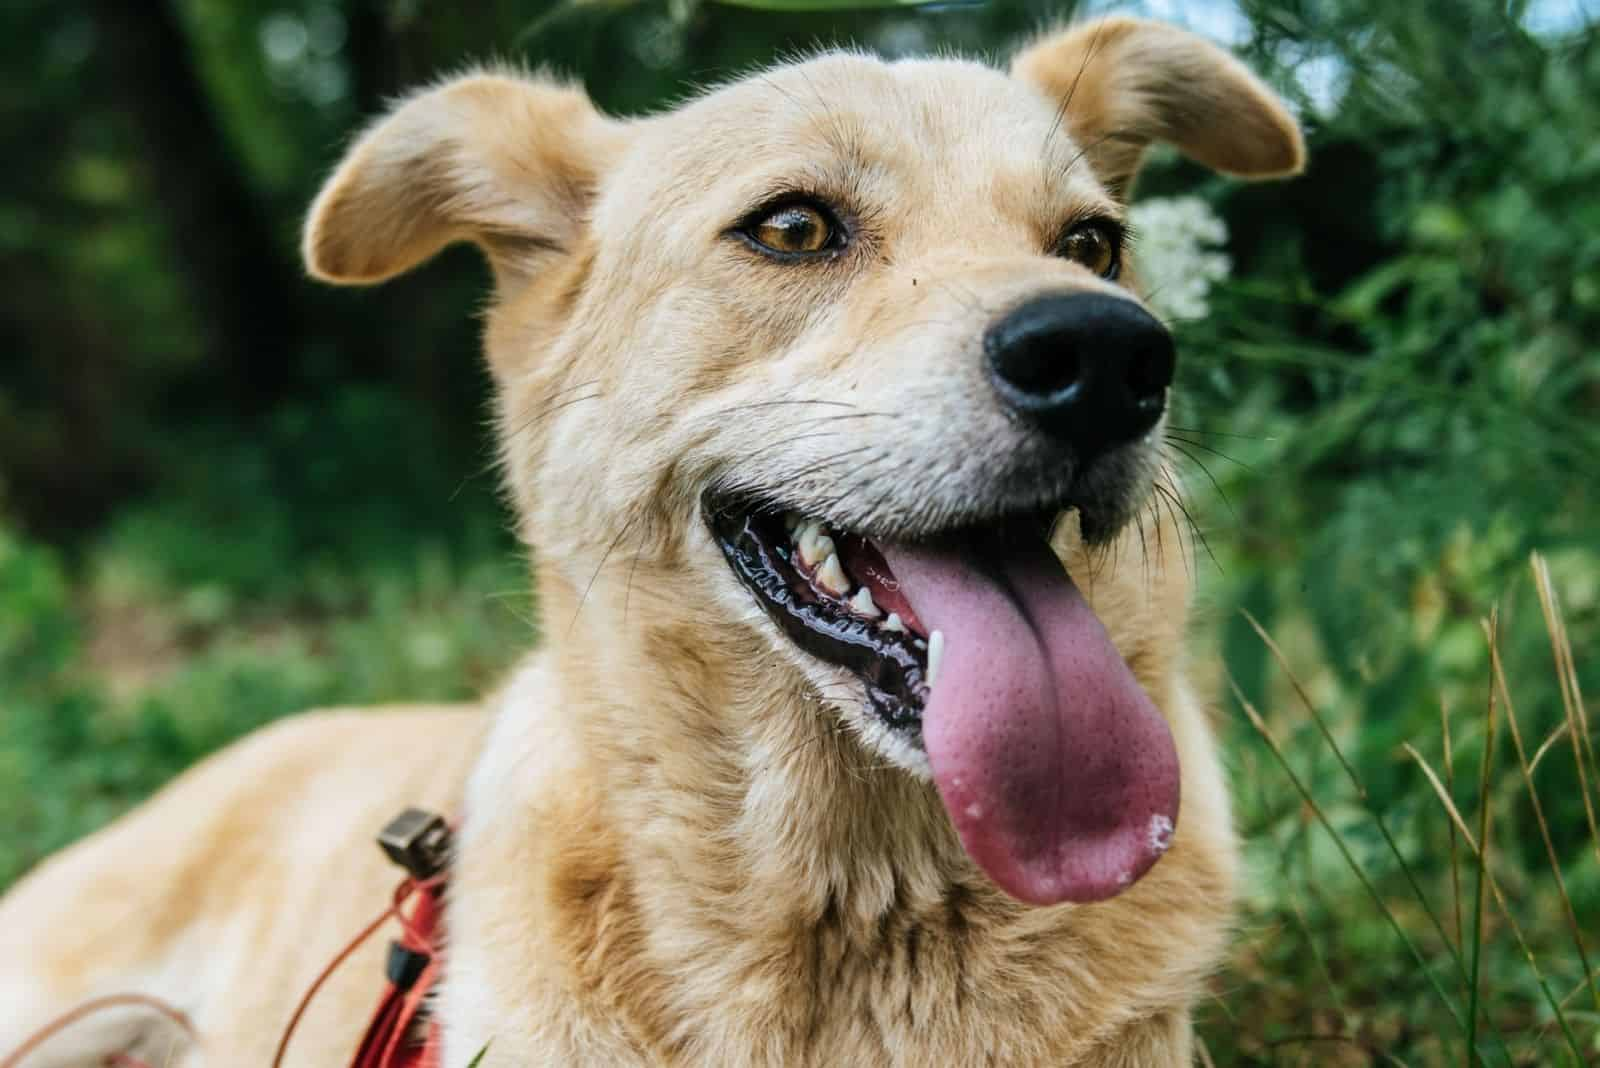 German Shepherd Husky mix dog smiling with tongue out